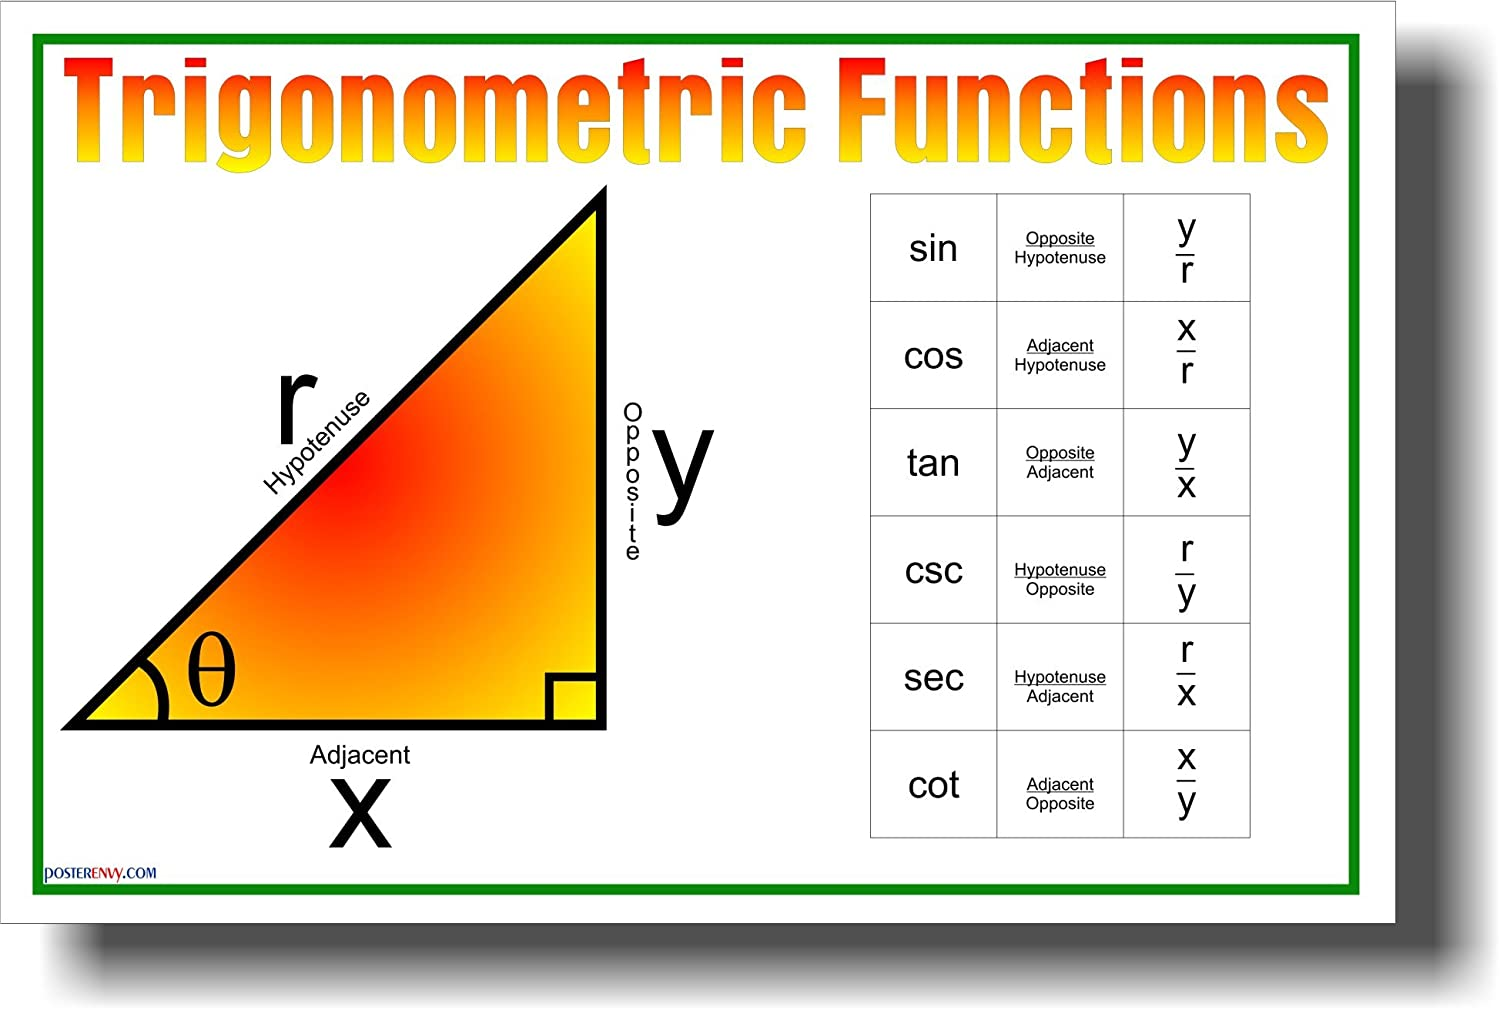 Amazon.com: Trigonometric Functions - Classroom Math Poster: Prints ...